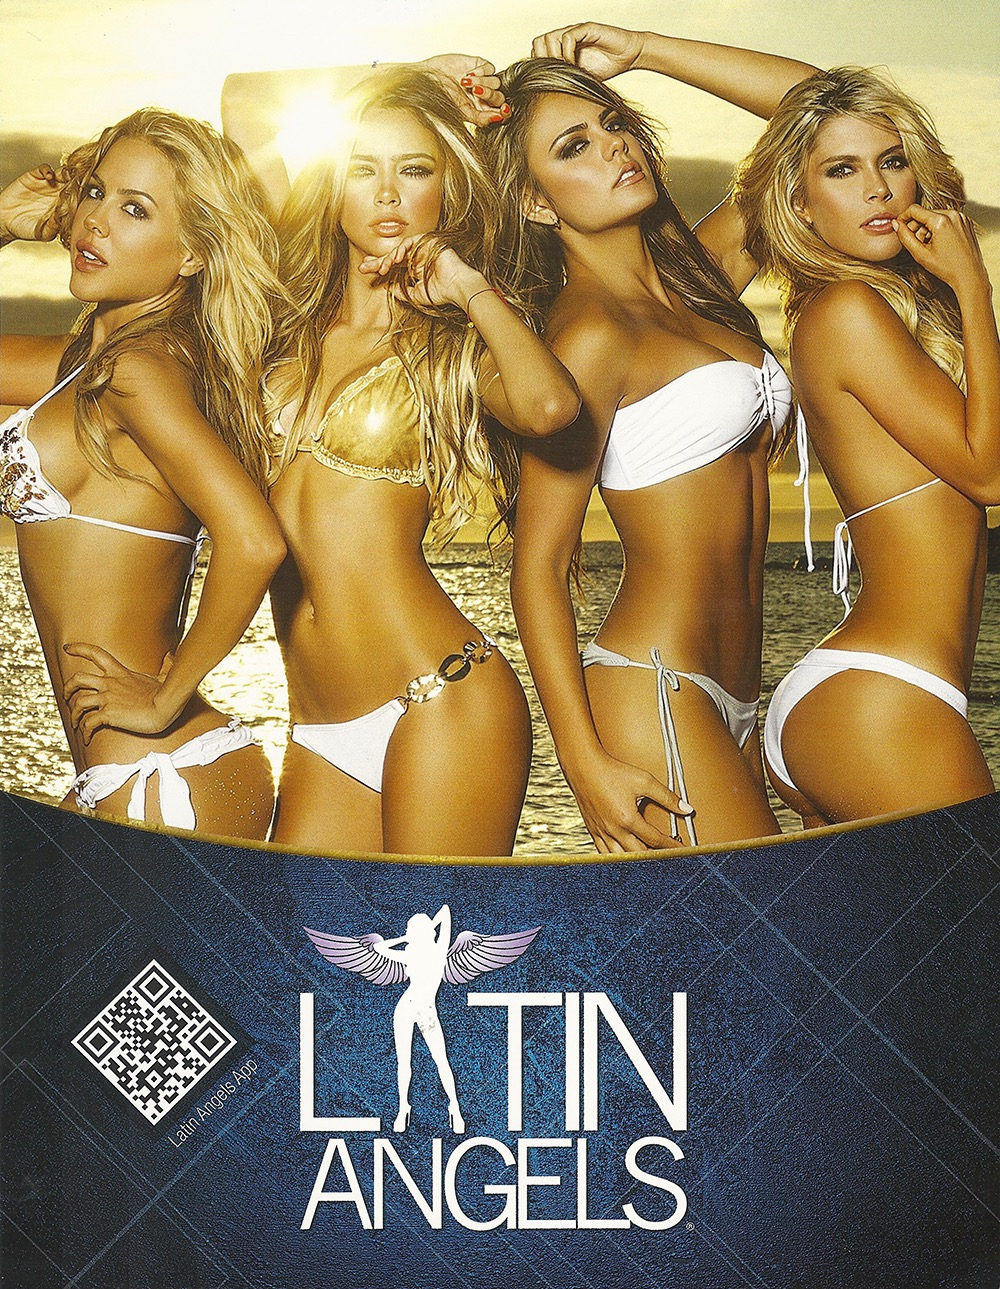 LATIN ANGELS